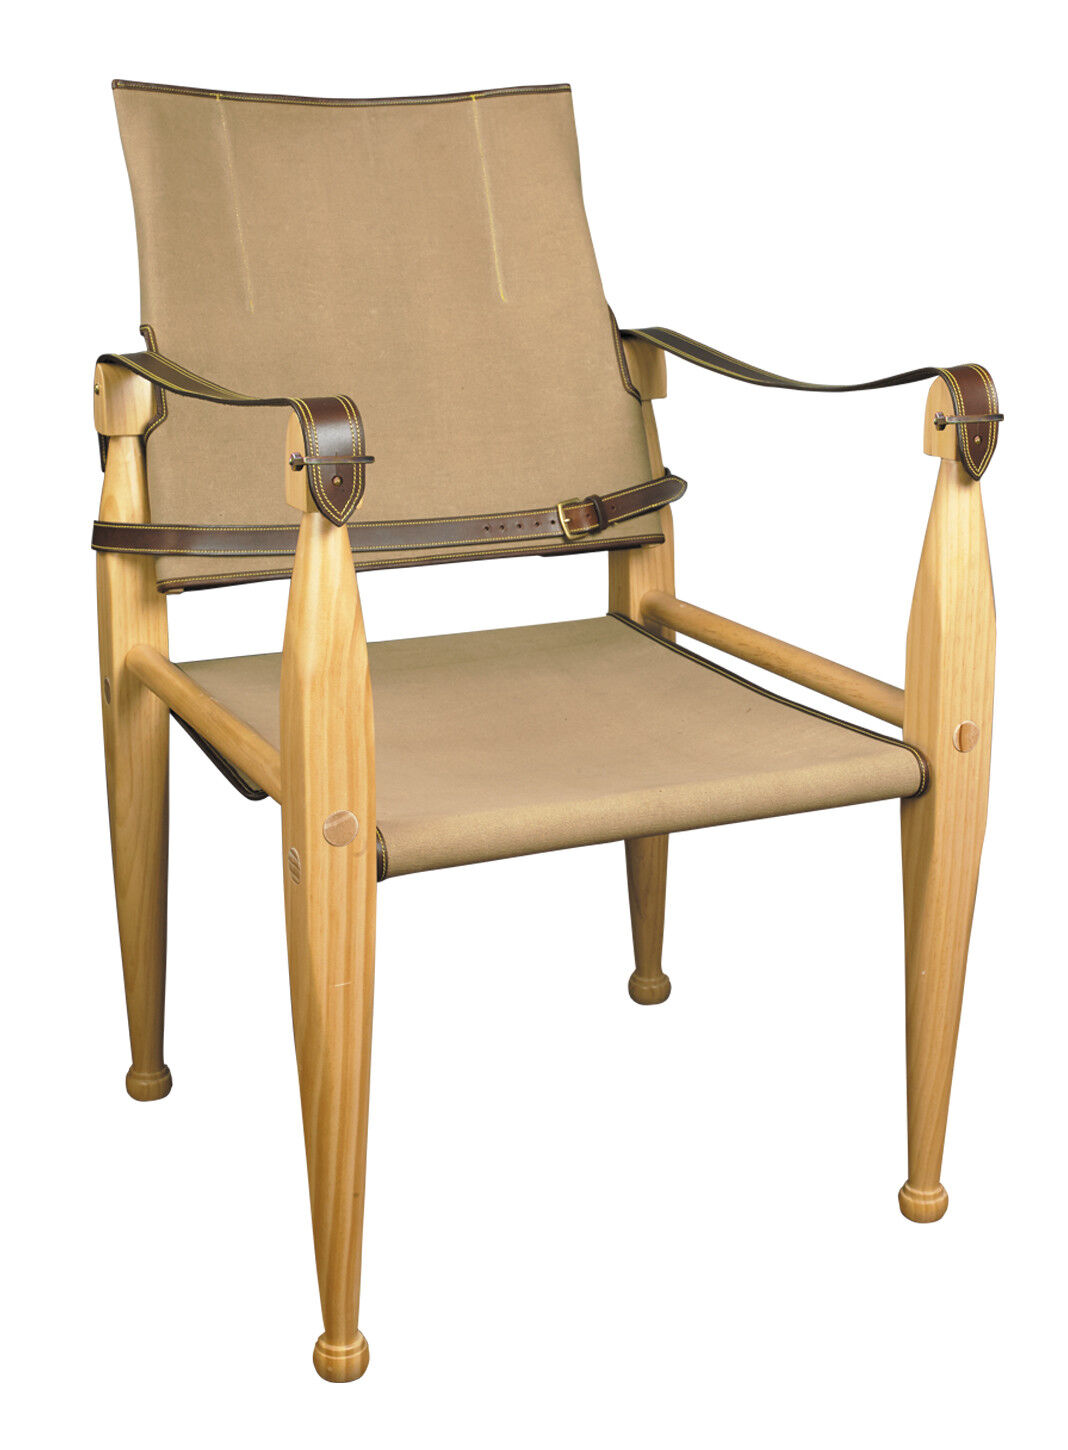 Campaign Chair Canvas & Leather 35  Wooden British Officer's Camp Furniture New